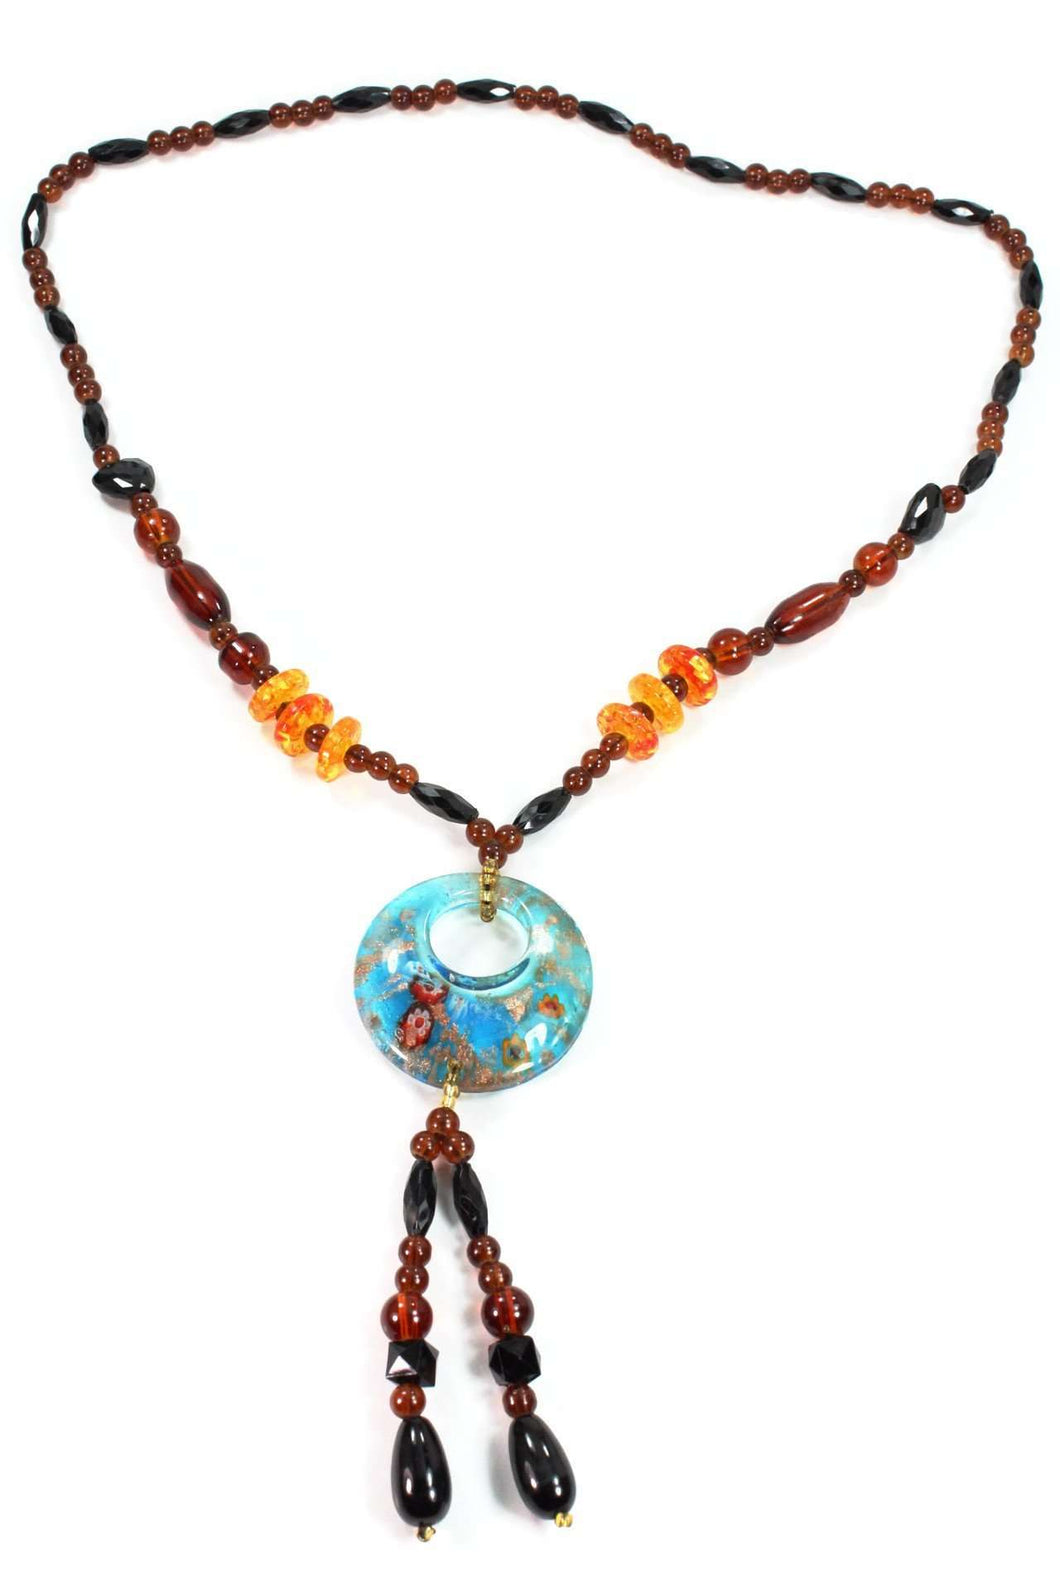 Colorful Glass Round Pendant Gypsy Style Shimmer Necklace